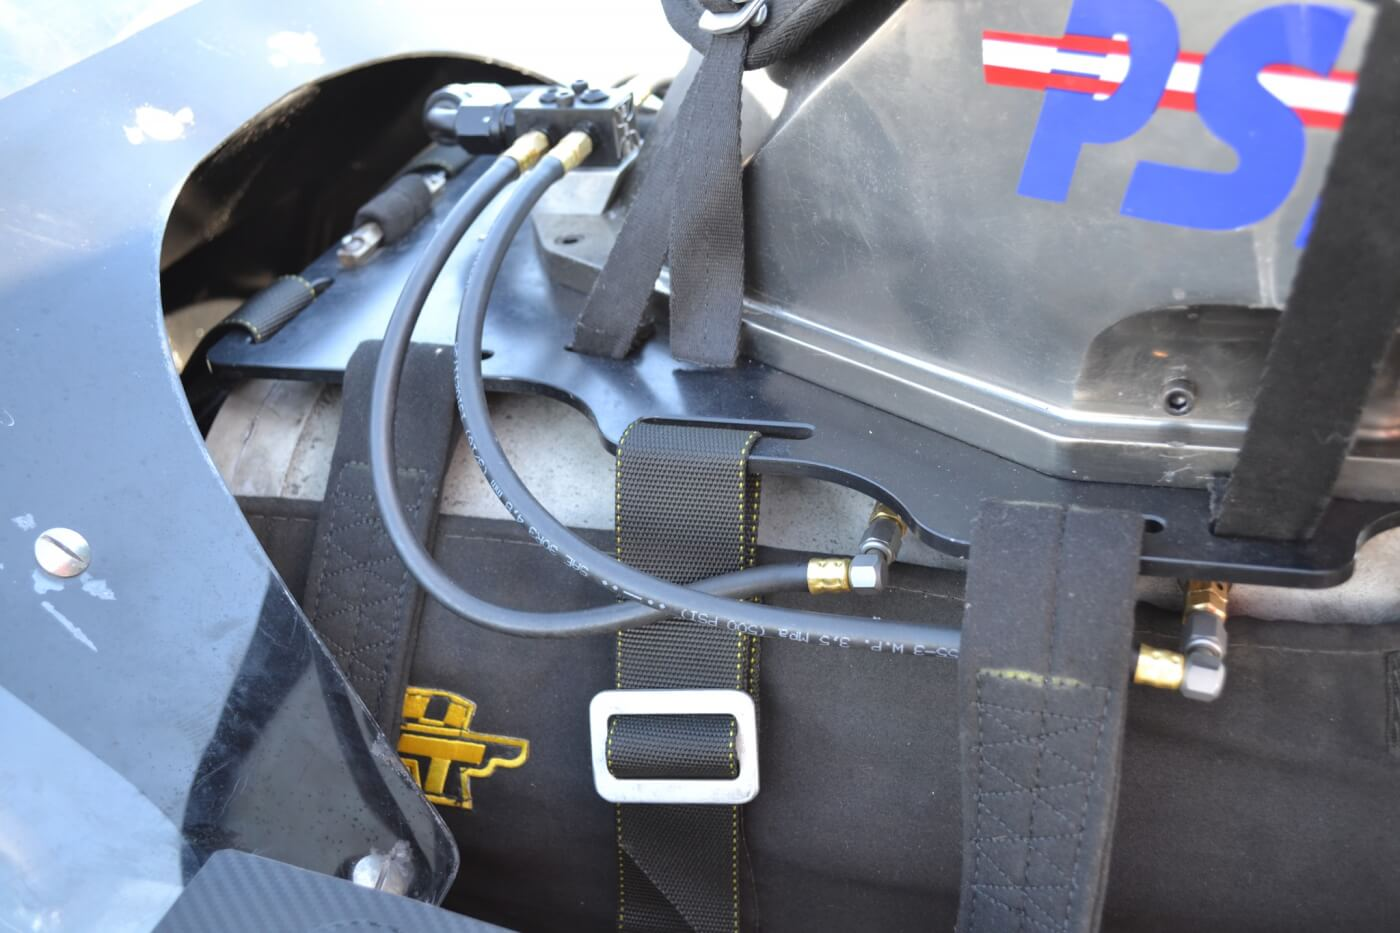 The big PSI 206D screw blower takes more power than a turbo to drive, but is capable of instant boost as soon as the throttle is matted. The four-butterfly hat is also from PSI, while the lines under the hat are for the water/oil injection.